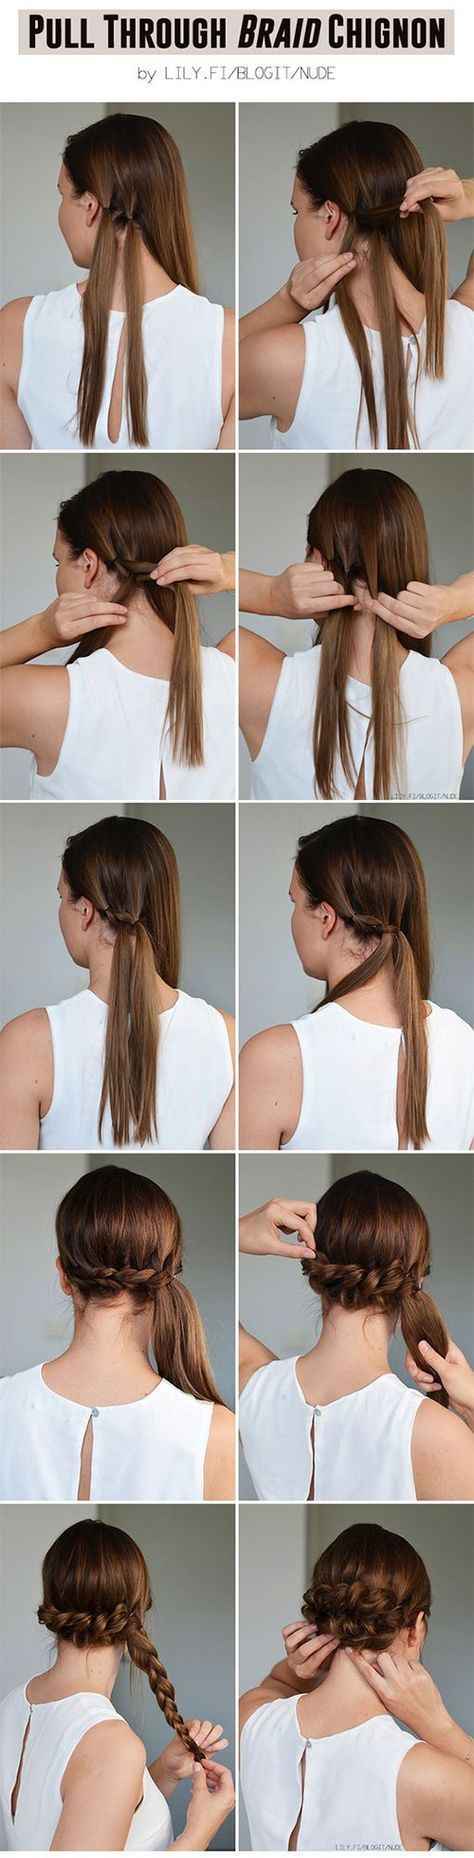 Updos for girls with long hair easy hairstyle tutorials for prom